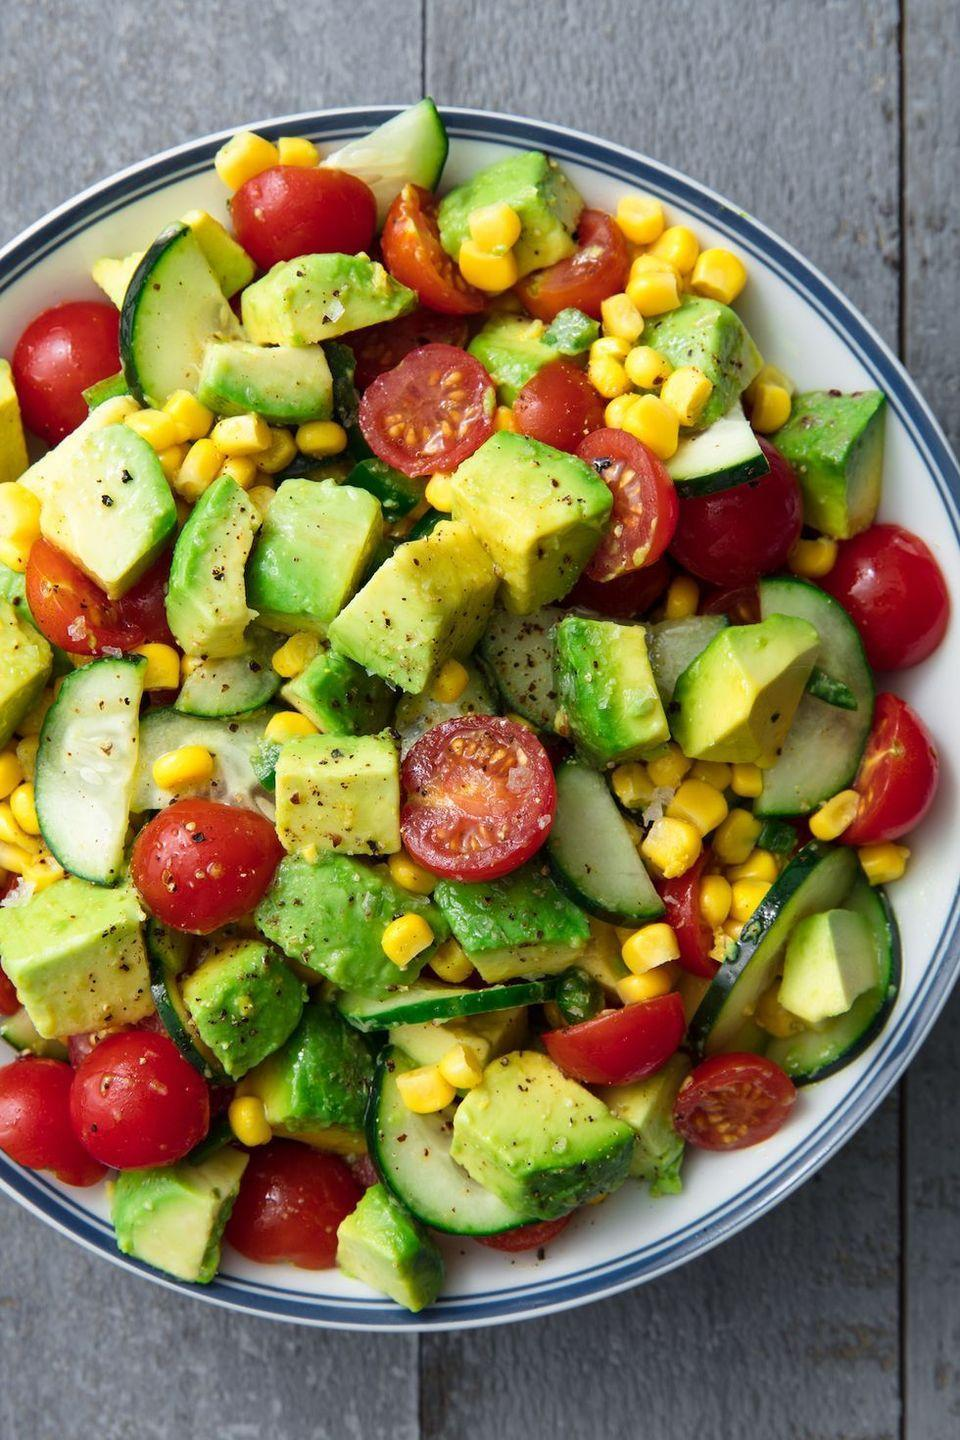 """<p>Don't confuse this with guac—there's way more depth of flavour, which makes it one of our favourite summer sides of all time. But the real beauty? You're totally welcome to eat it with tortilla crisps. (Just know it tastes amazing without 'em.)</p><p>Get the <a href=""""https://www.delish.com/uk/cooking/recipes/a29842914/avocado-tomato-salad-recipe/"""" rel=""""nofollow noopener"""" target=""""_blank"""" data-ylk=""""slk:Avocado & Tomato Salad"""" class=""""link rapid-noclick-resp"""">Avocado & Tomato Salad</a> recipe.</p>"""